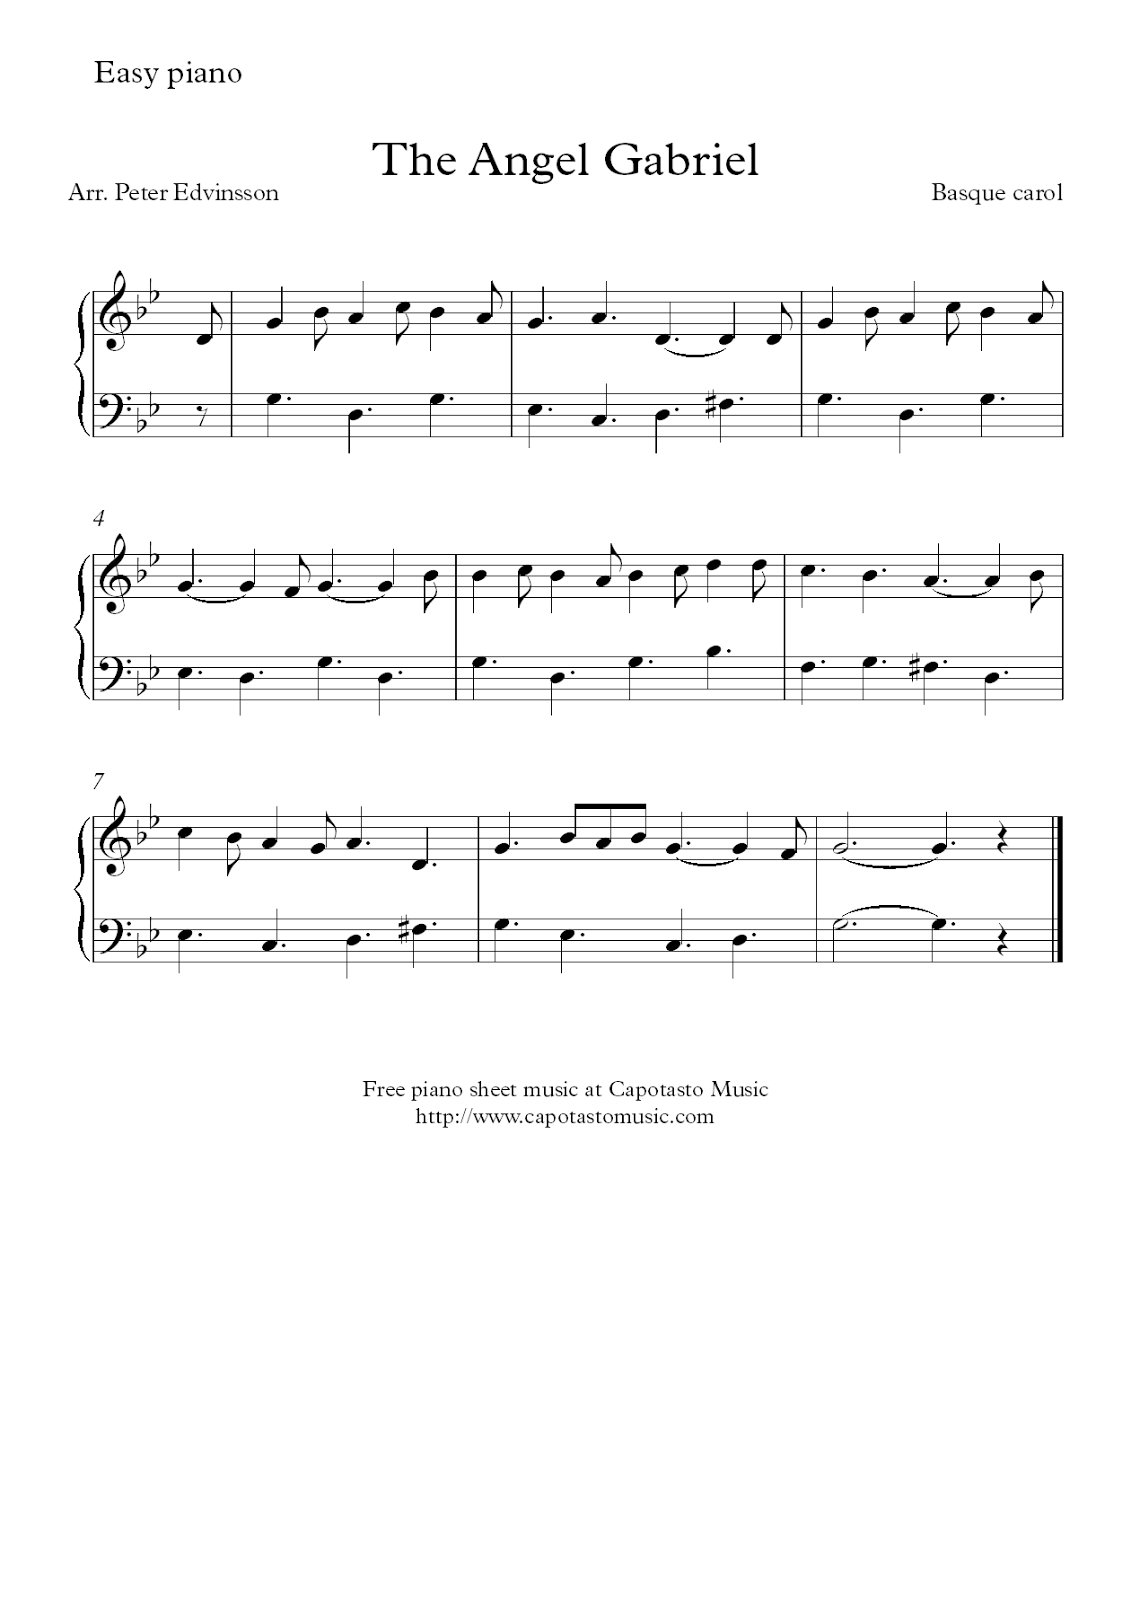 free christmas piano sheet music score the angel gabriel - Free Christmas Piano Sheet Music